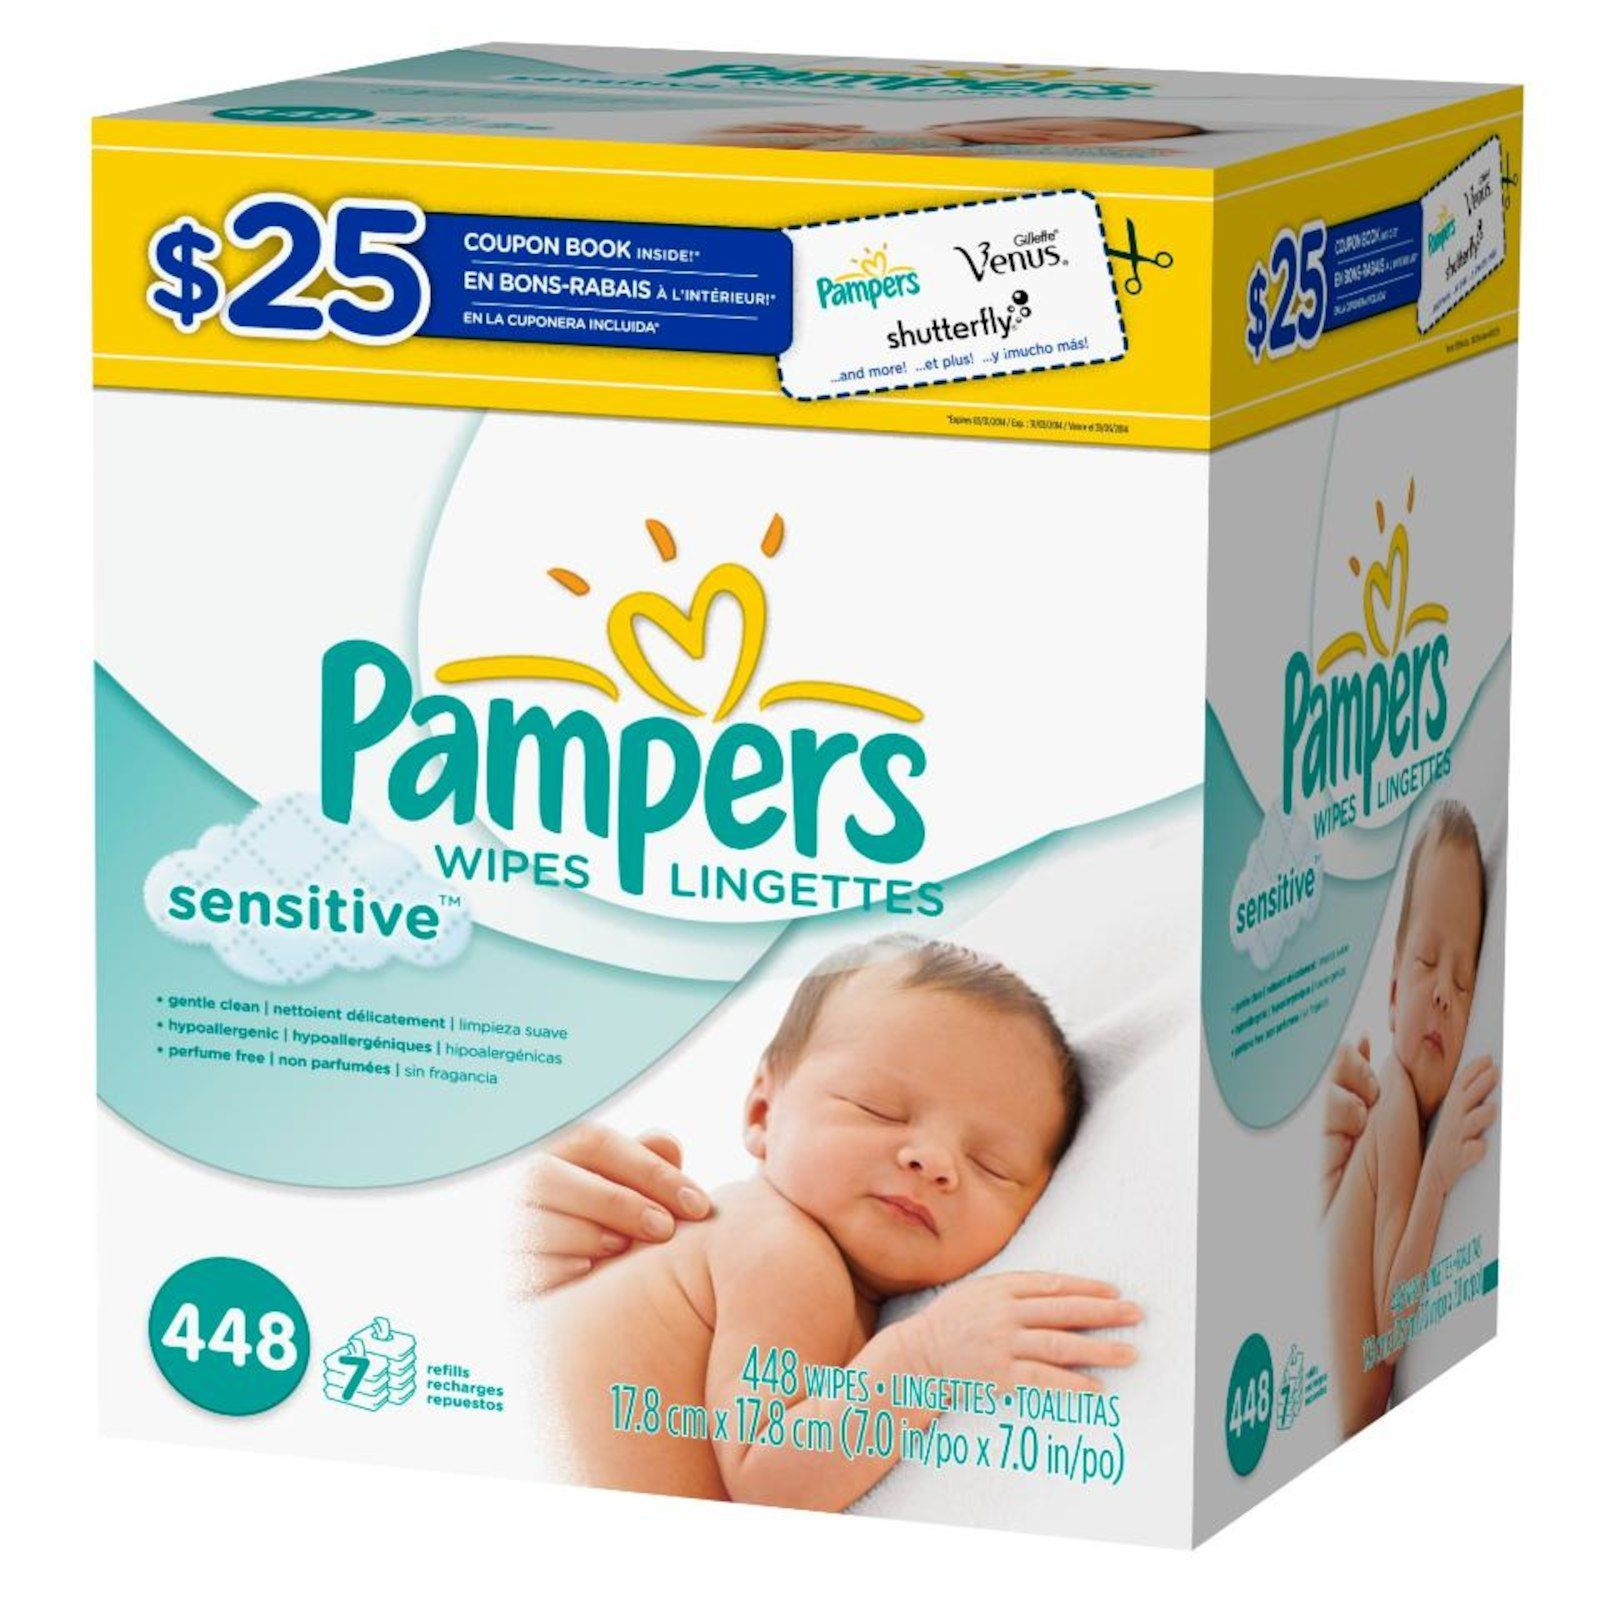 Clinically Proven Mild Pampers Sensitive Wipes Help